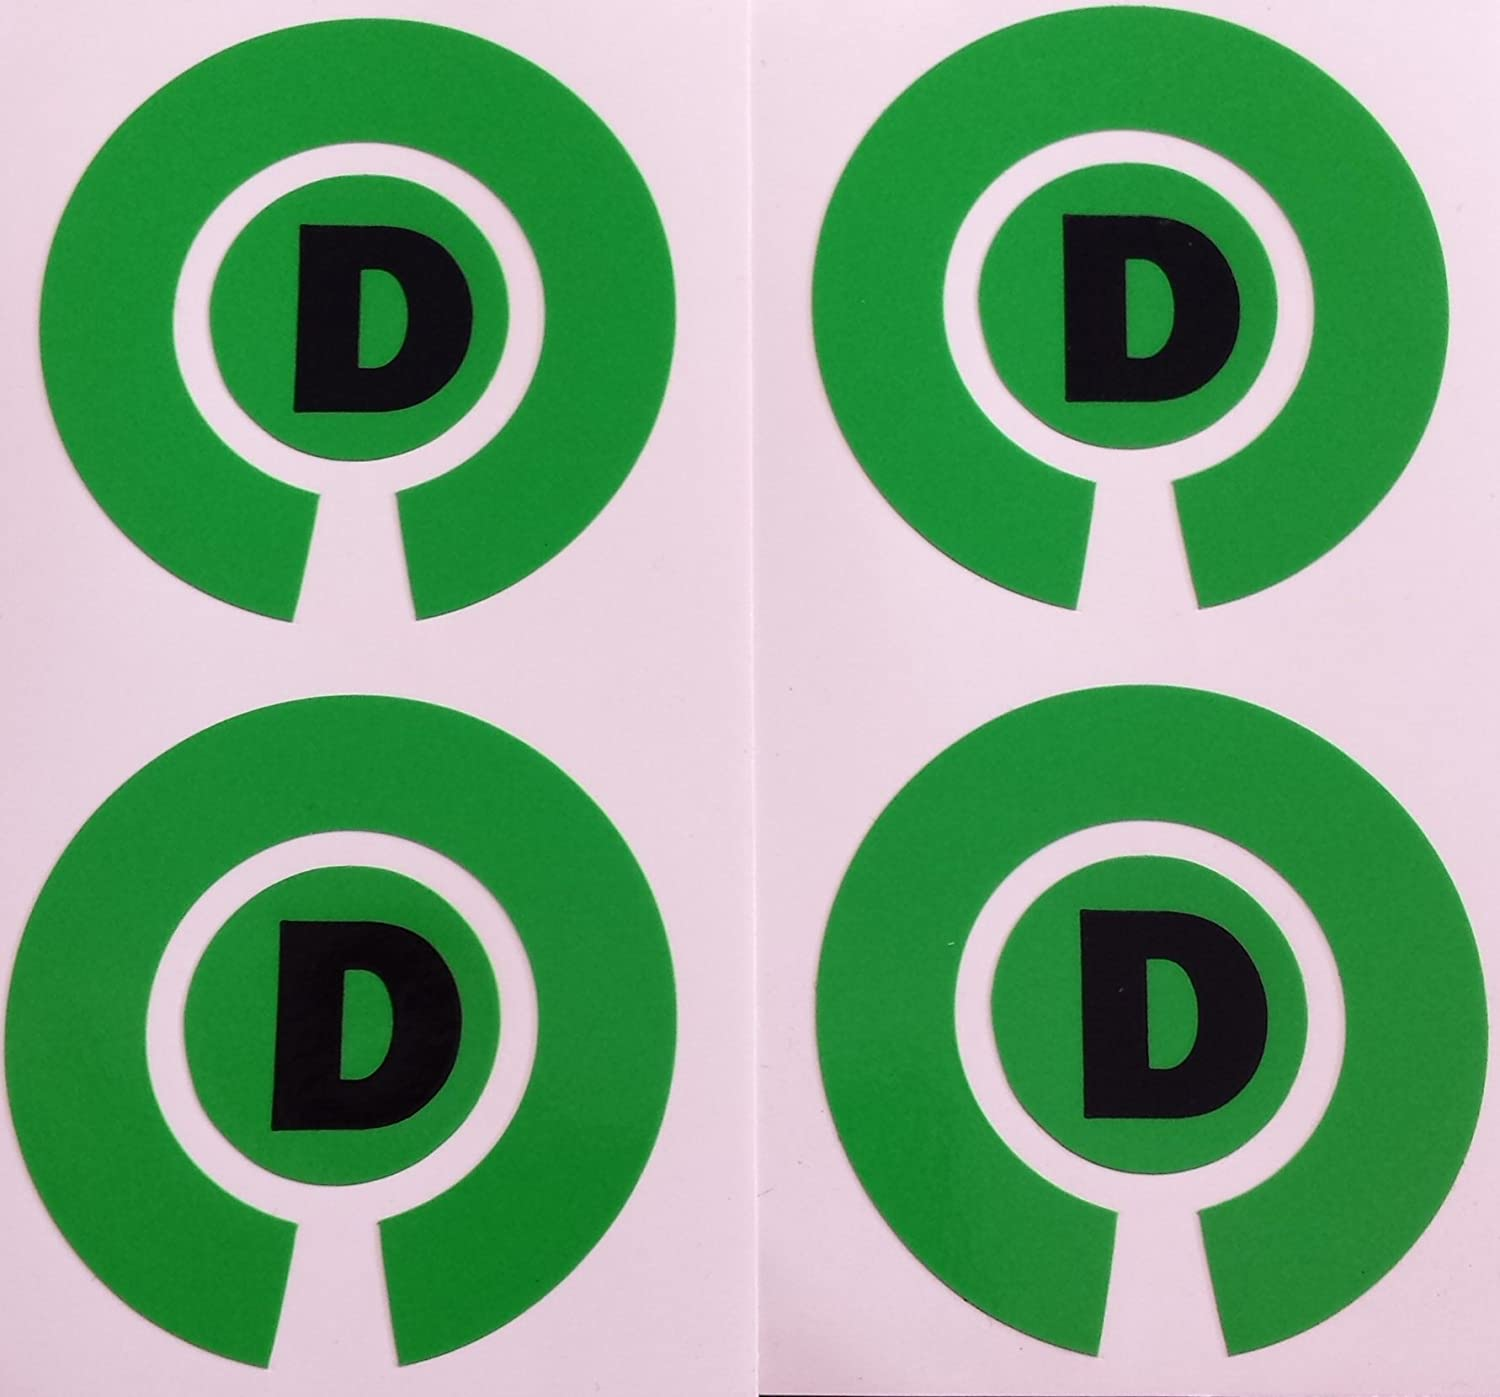 Crown Green Lawn Indoor Bowls Adhesive Lettered Coloured Marker Labels Set of 4 (Green, D)